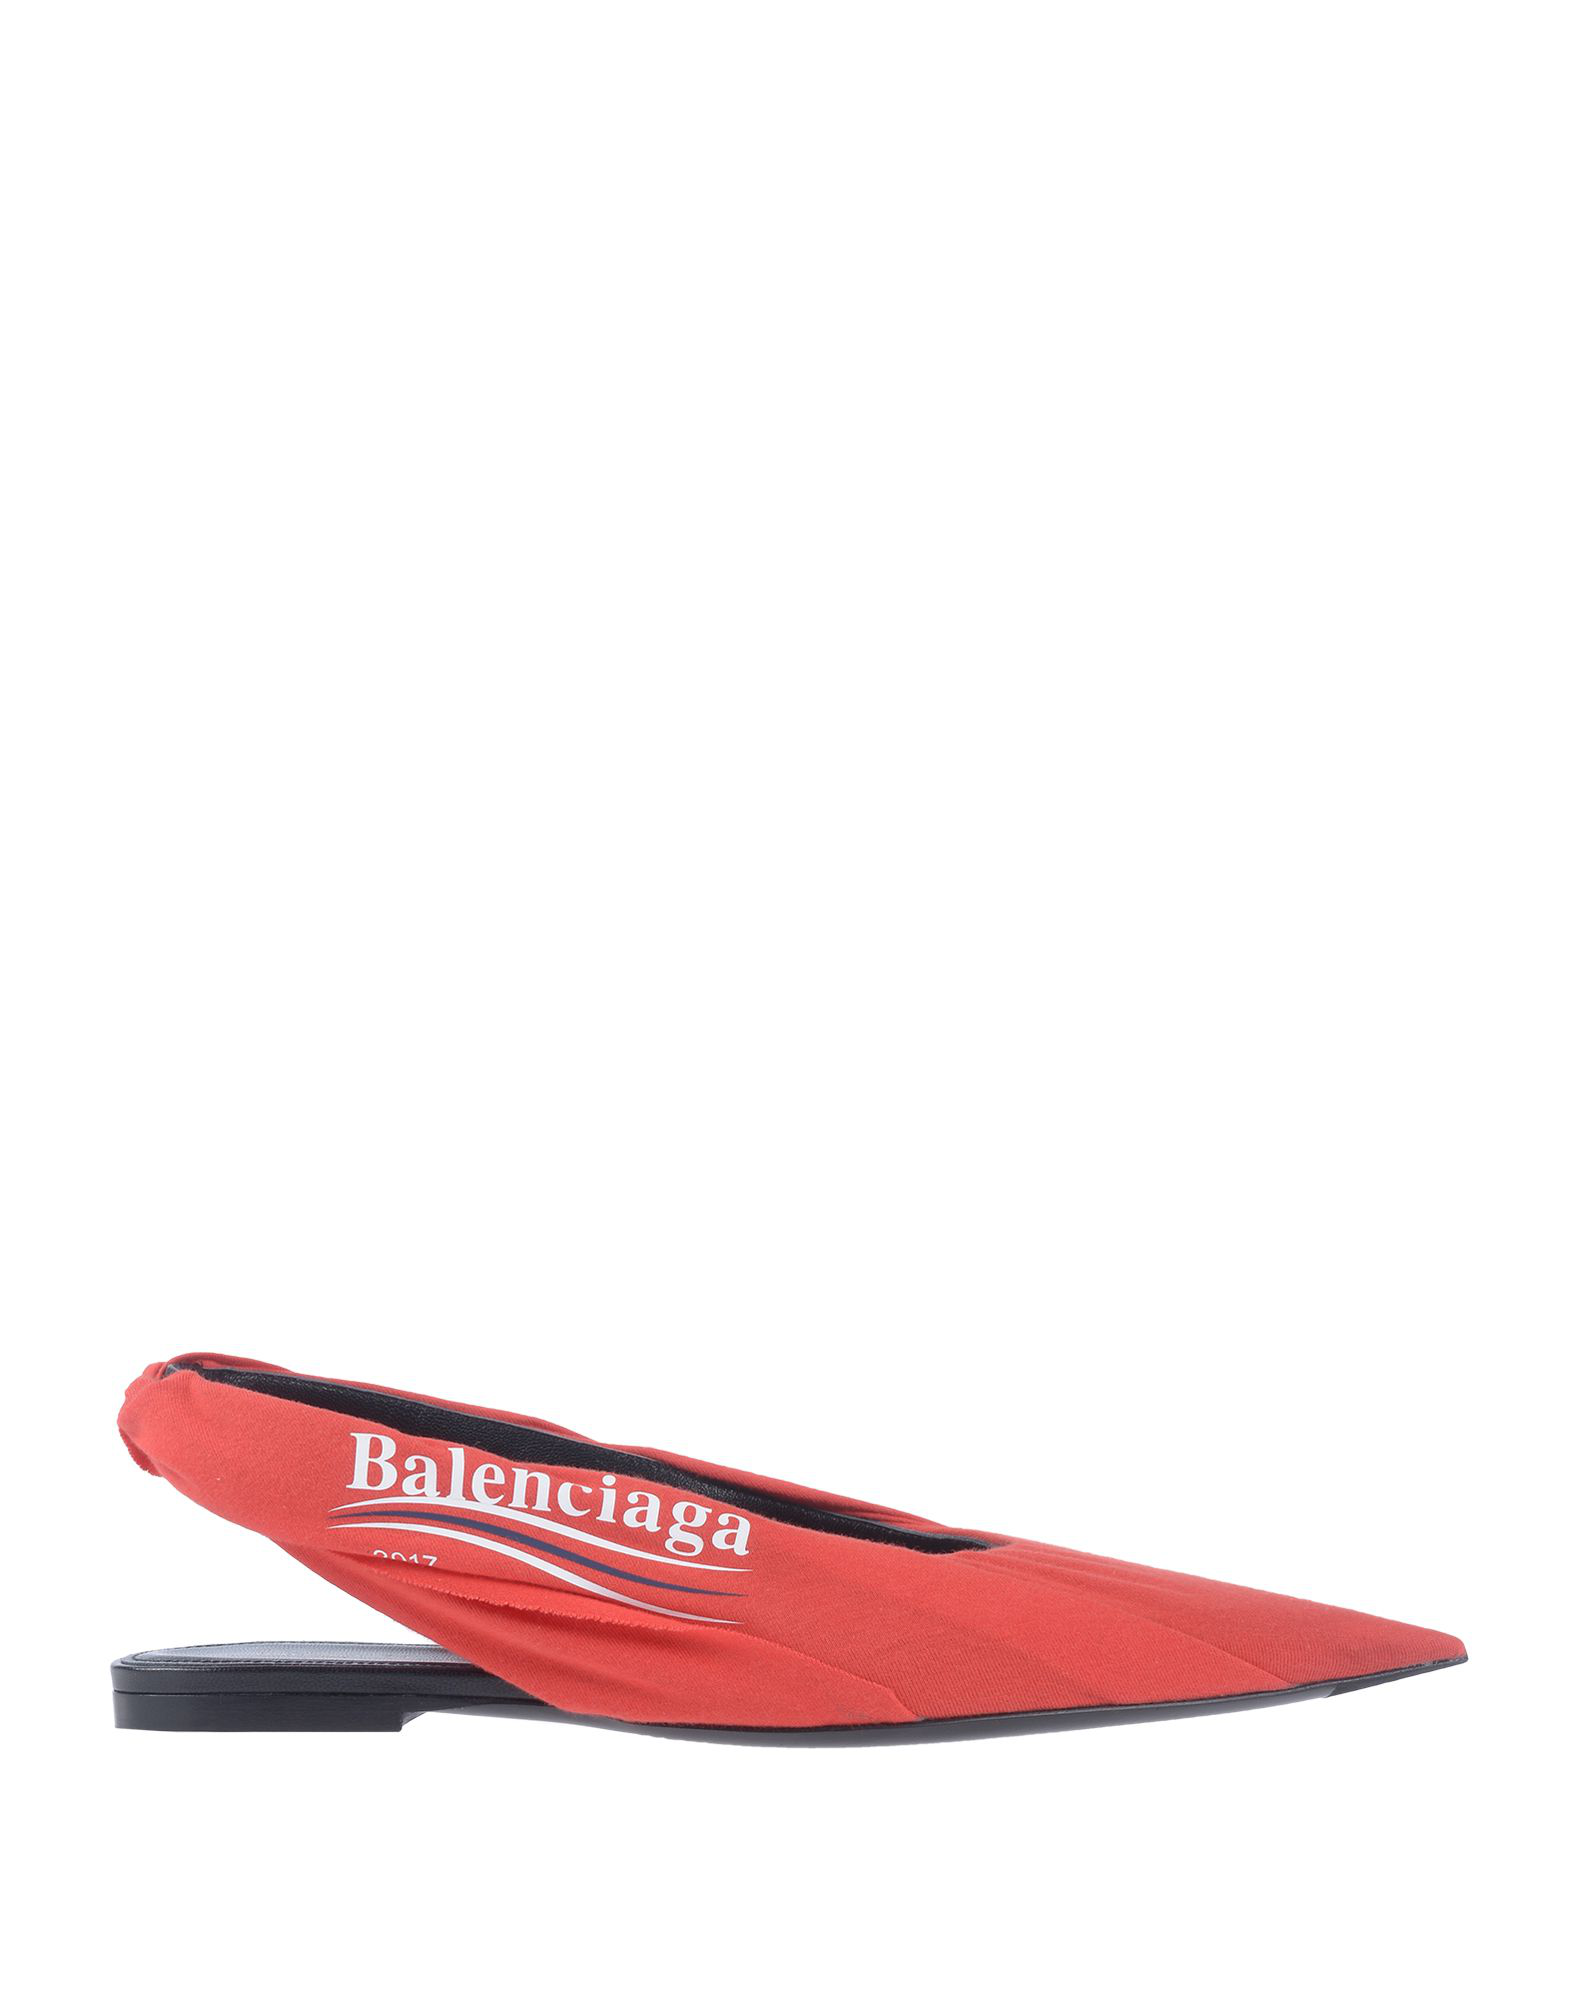 a8fa0f08950 White and red logo side print. Jersey-covered leather slingback heel strap.  Black leather lining